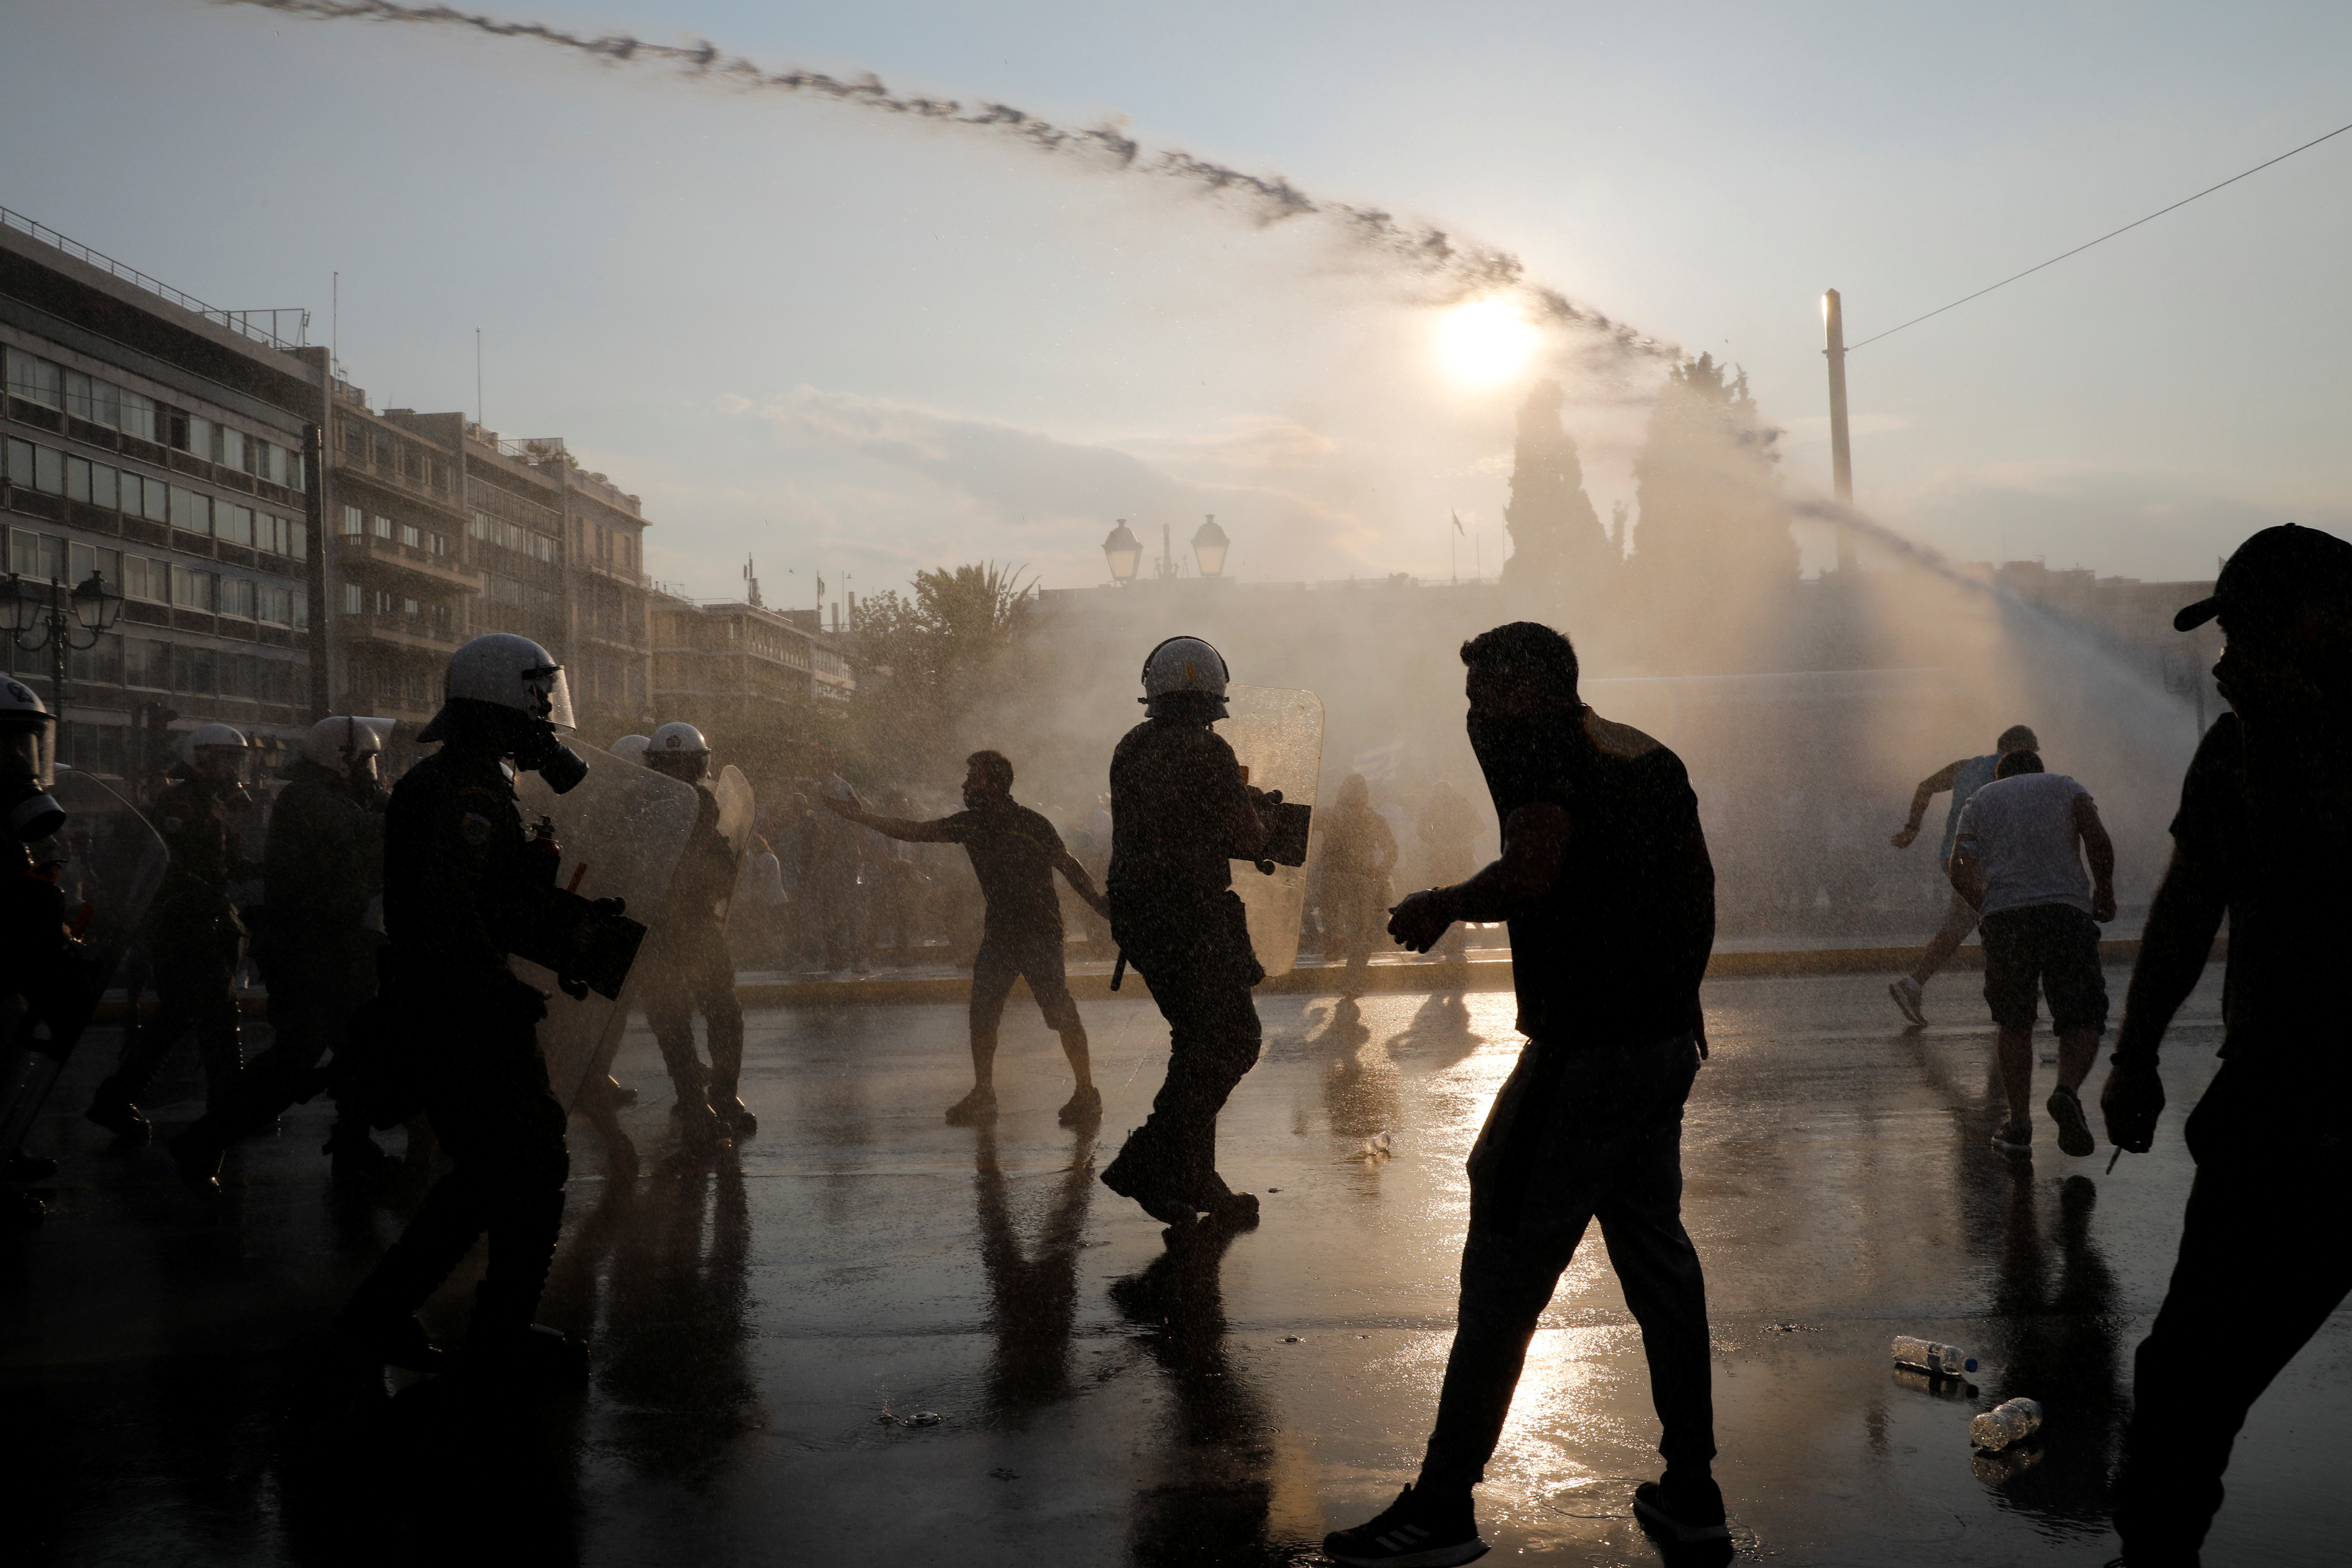 Police use water cannon against demonstrators during a protest againstcoronavirusdisease (COVID-19) vaccinations outside the parliament building, in Athens, Greece, July 21, 2021. REUTERS/Costas Baltas